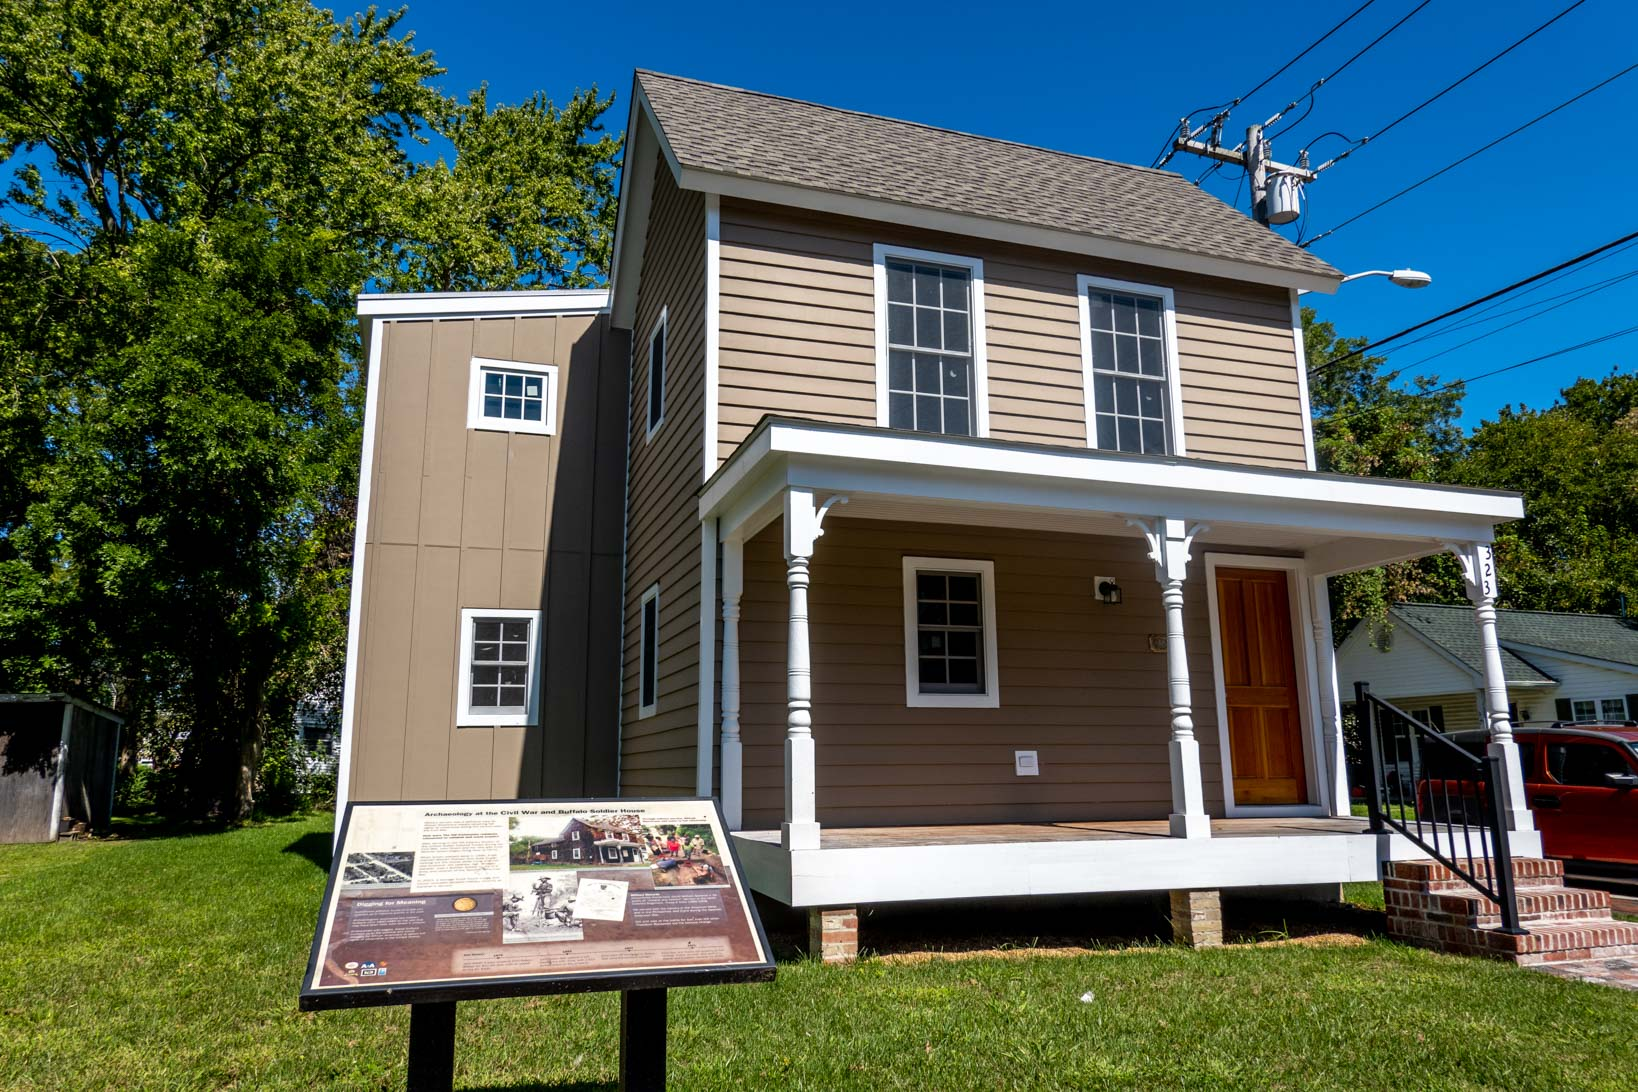 Wood shingled house, the Civil War and Buffalo Soldier house in The Hill